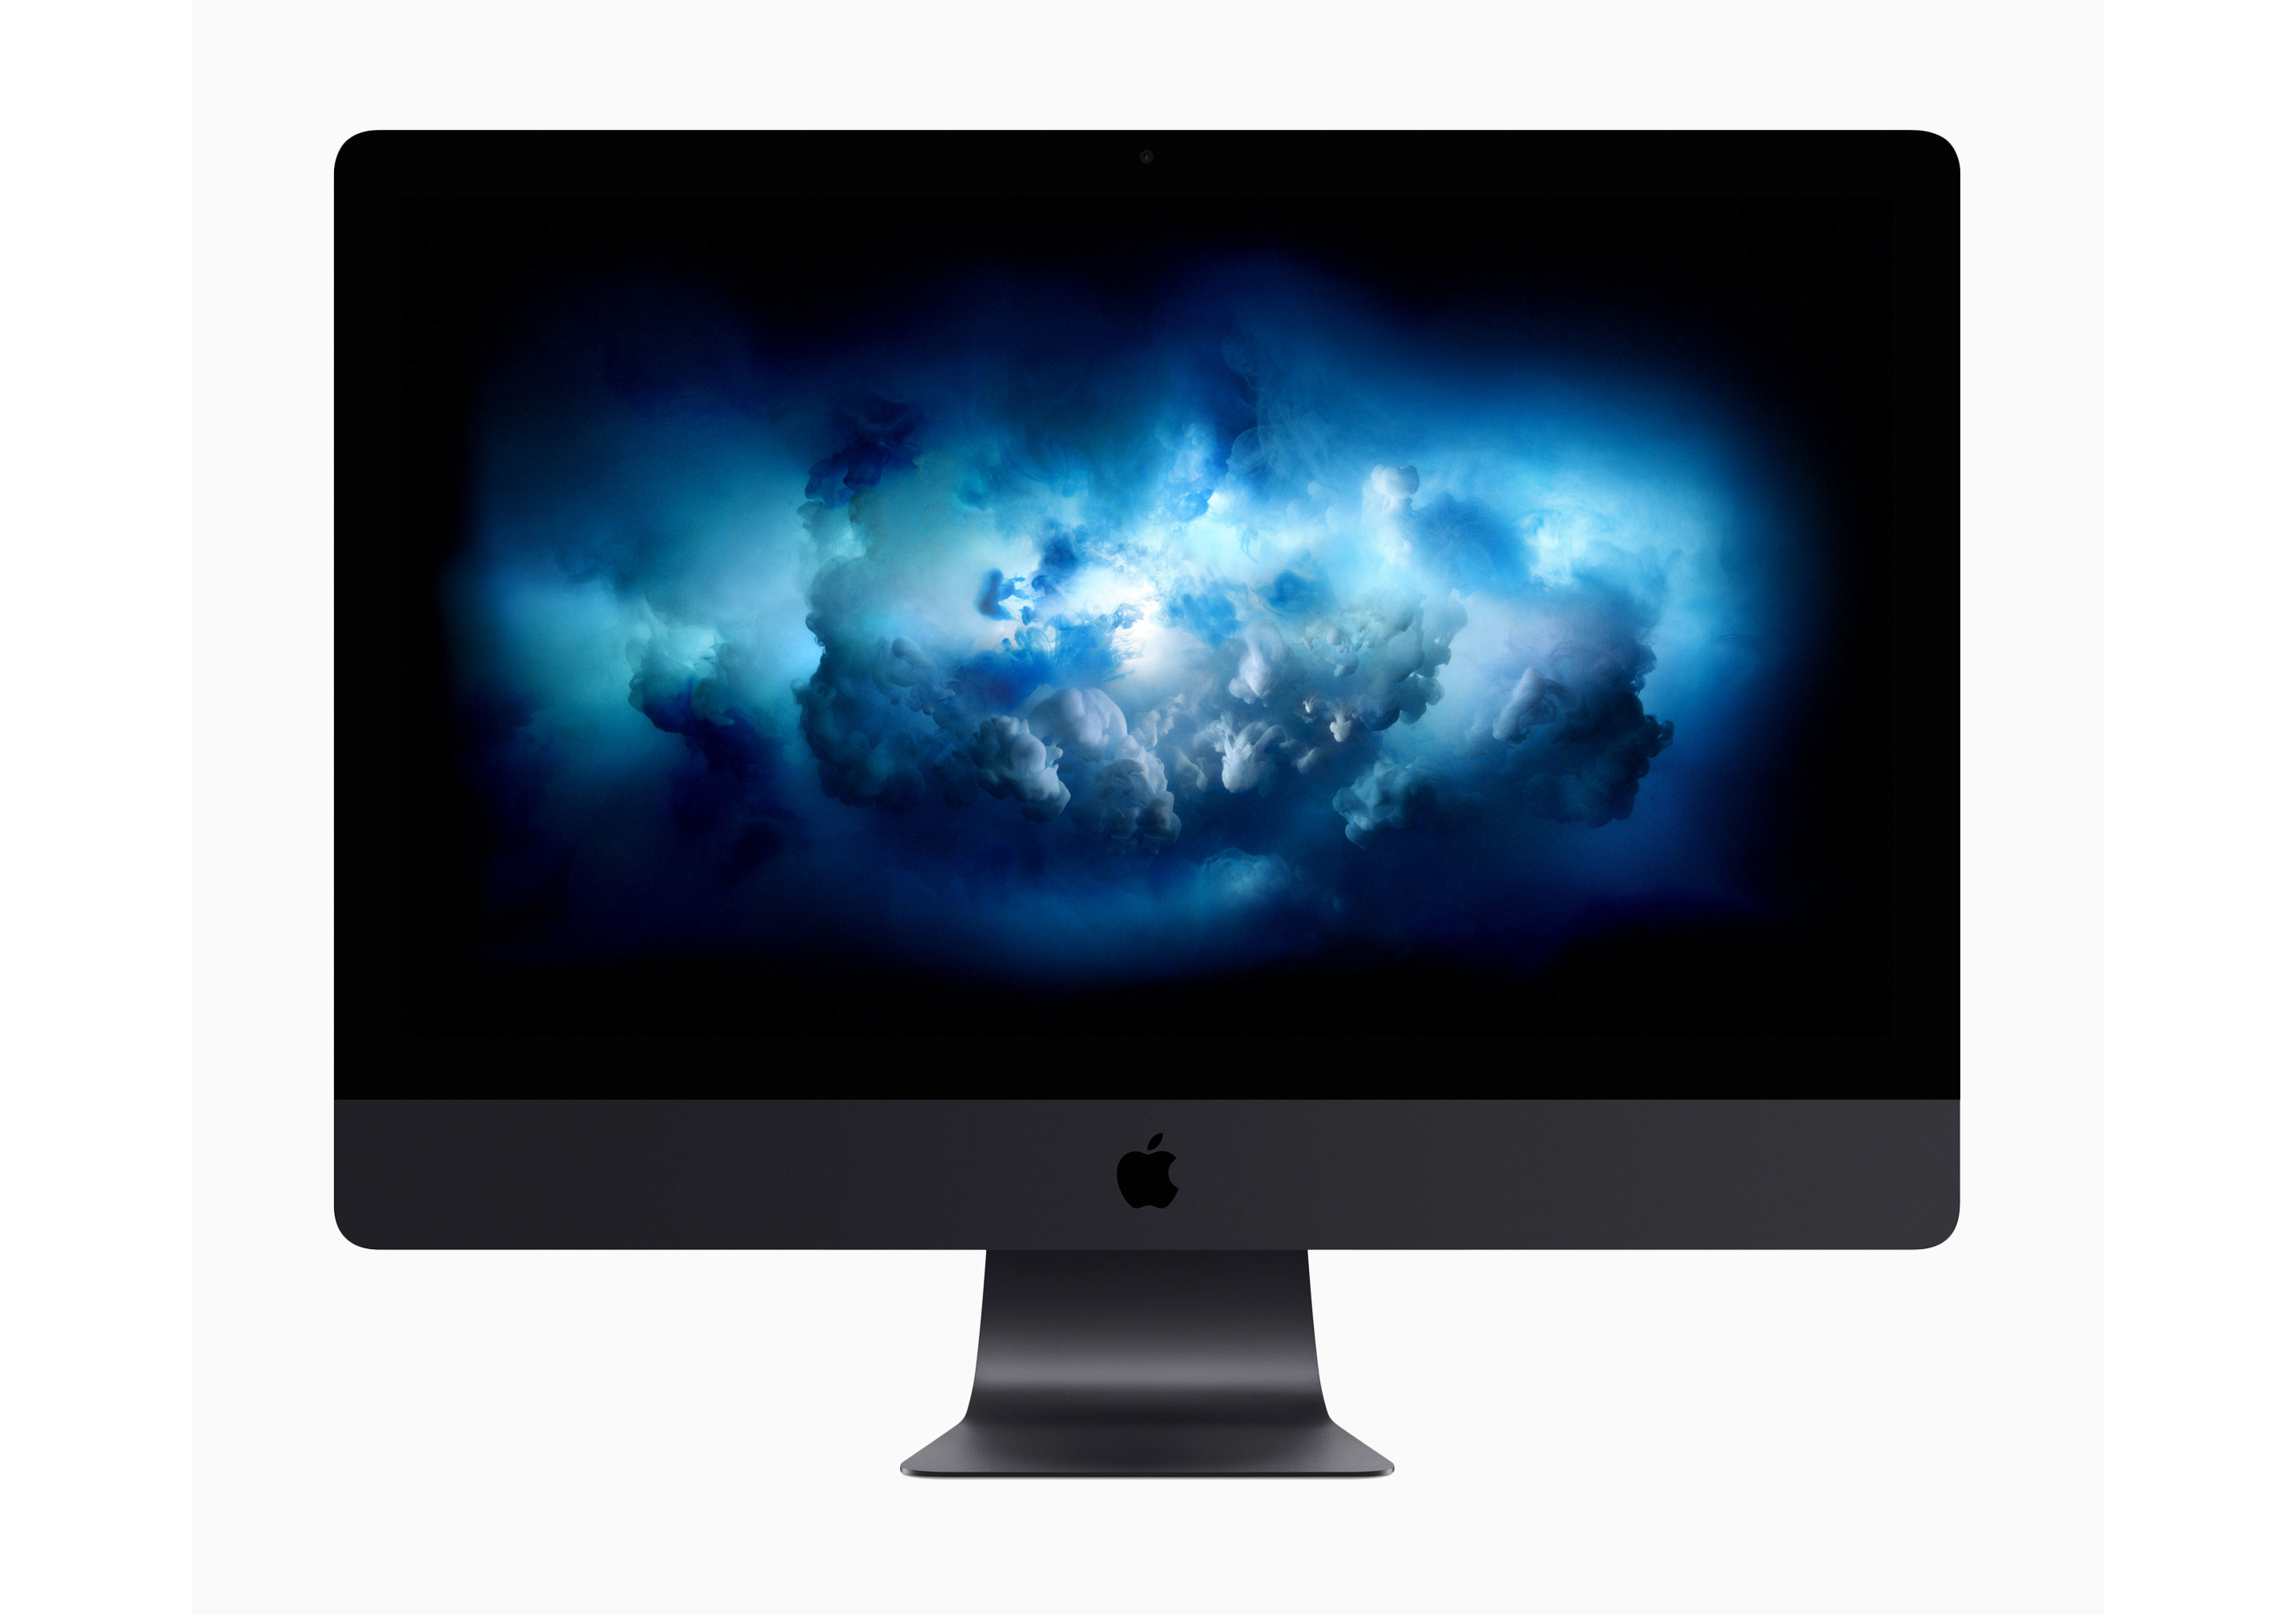 Photo of Se filtra en GeekBench el iMac Pro con Intel Xeon W-2150 B de 10 núcleos